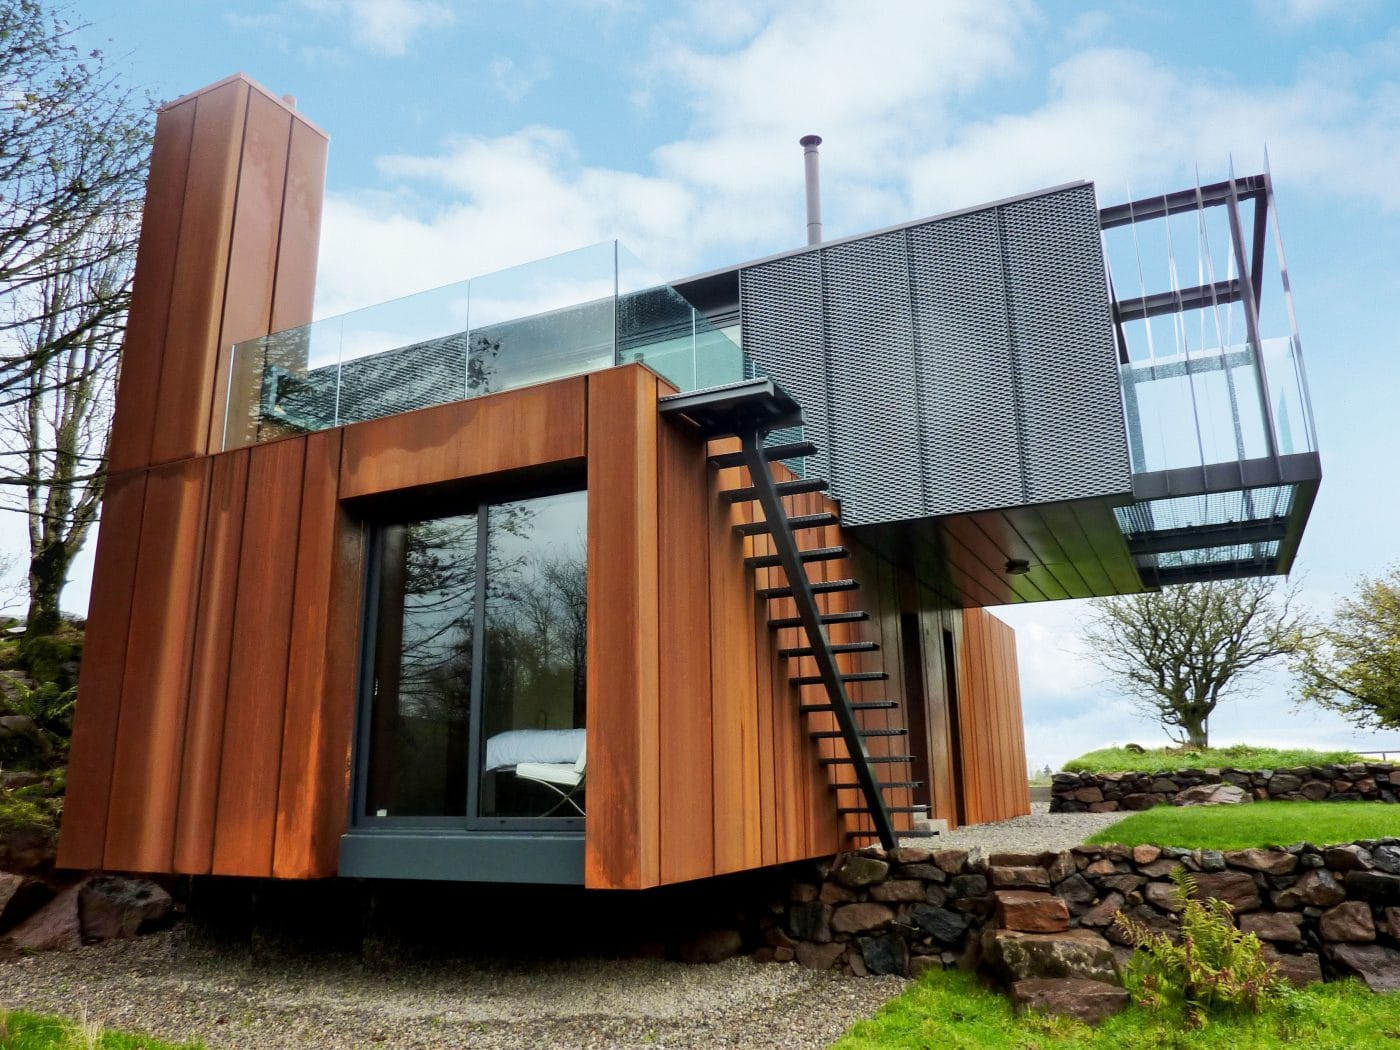 Grand designs shipping container home by patrick bradley for Architecture container